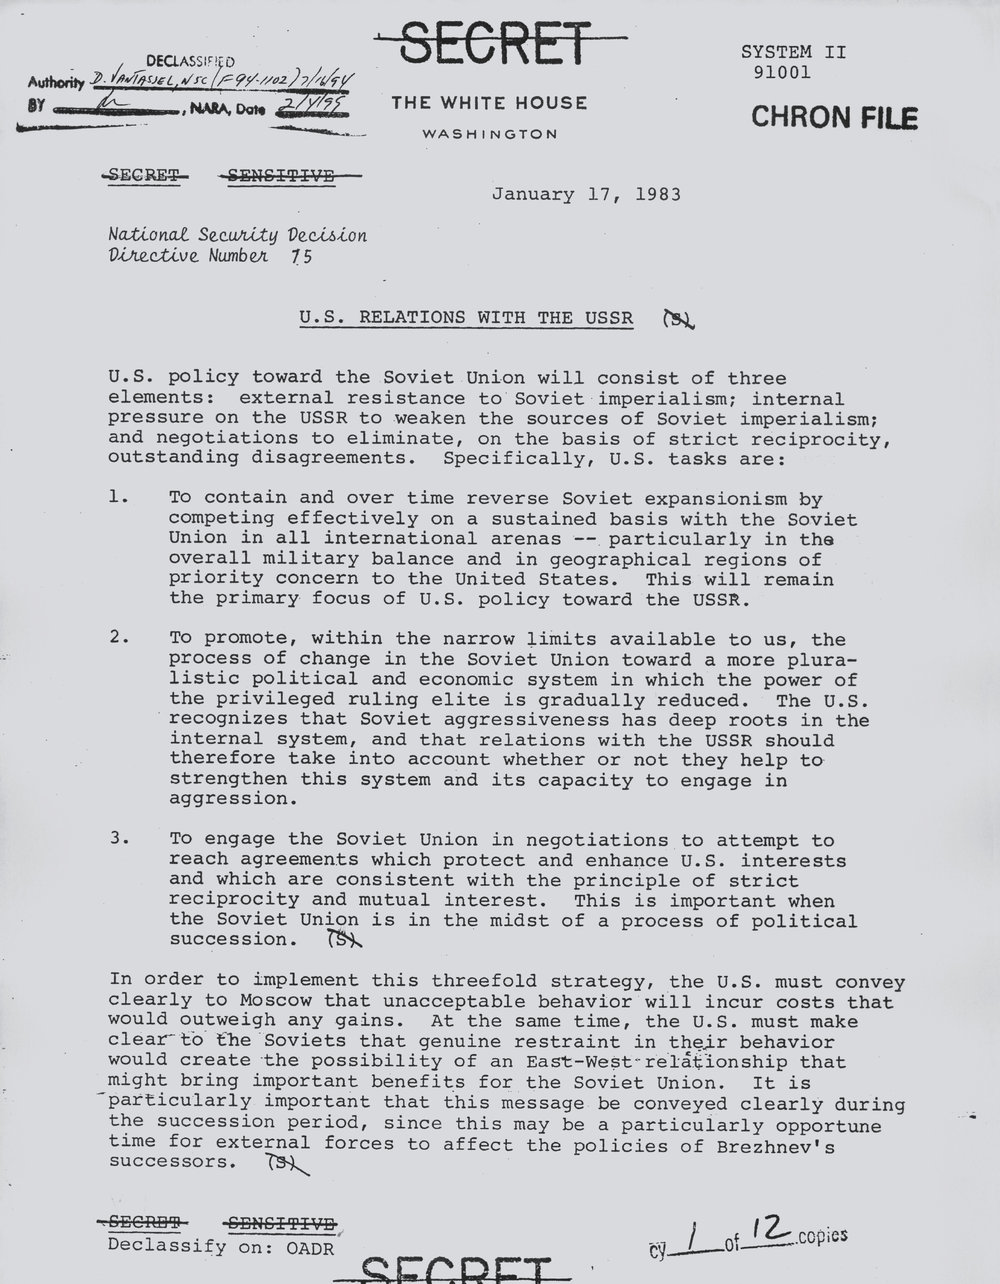 "National Security Decision Memorandum NSDD 75 ""U.S. Relations with the USSR"" of January 17, 1983, wants to ""promote change"" in the Soviet Union and improve relations with the Kremlin."